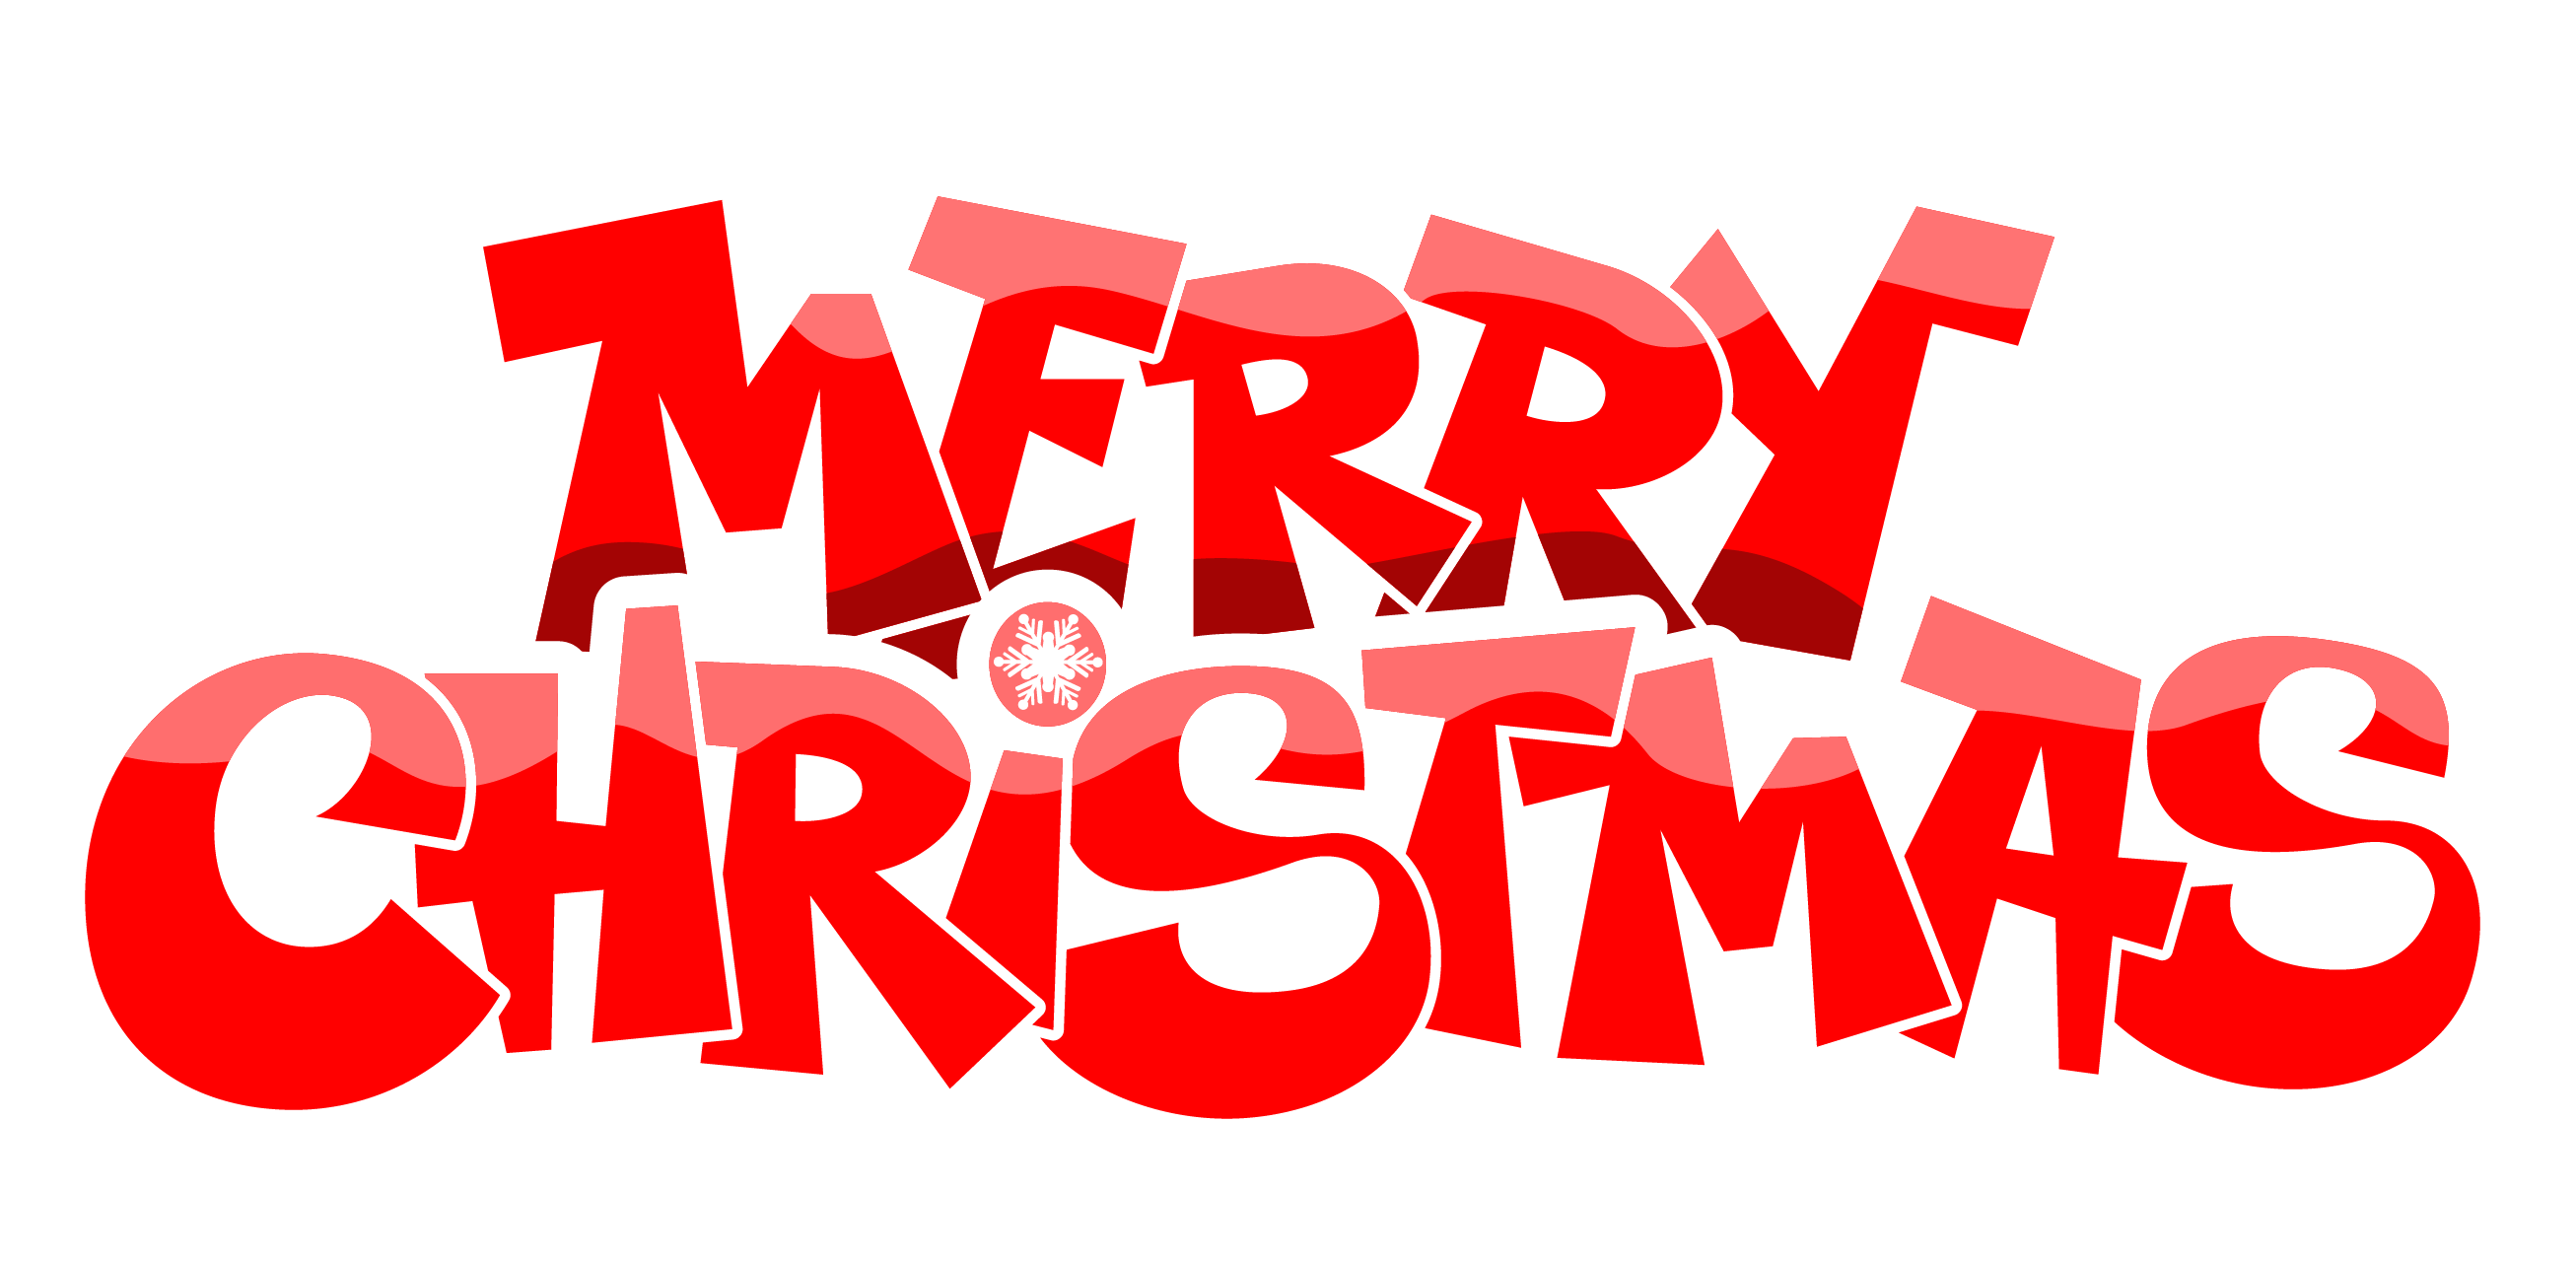 Merry christmas words merry christmas clip art words happy.